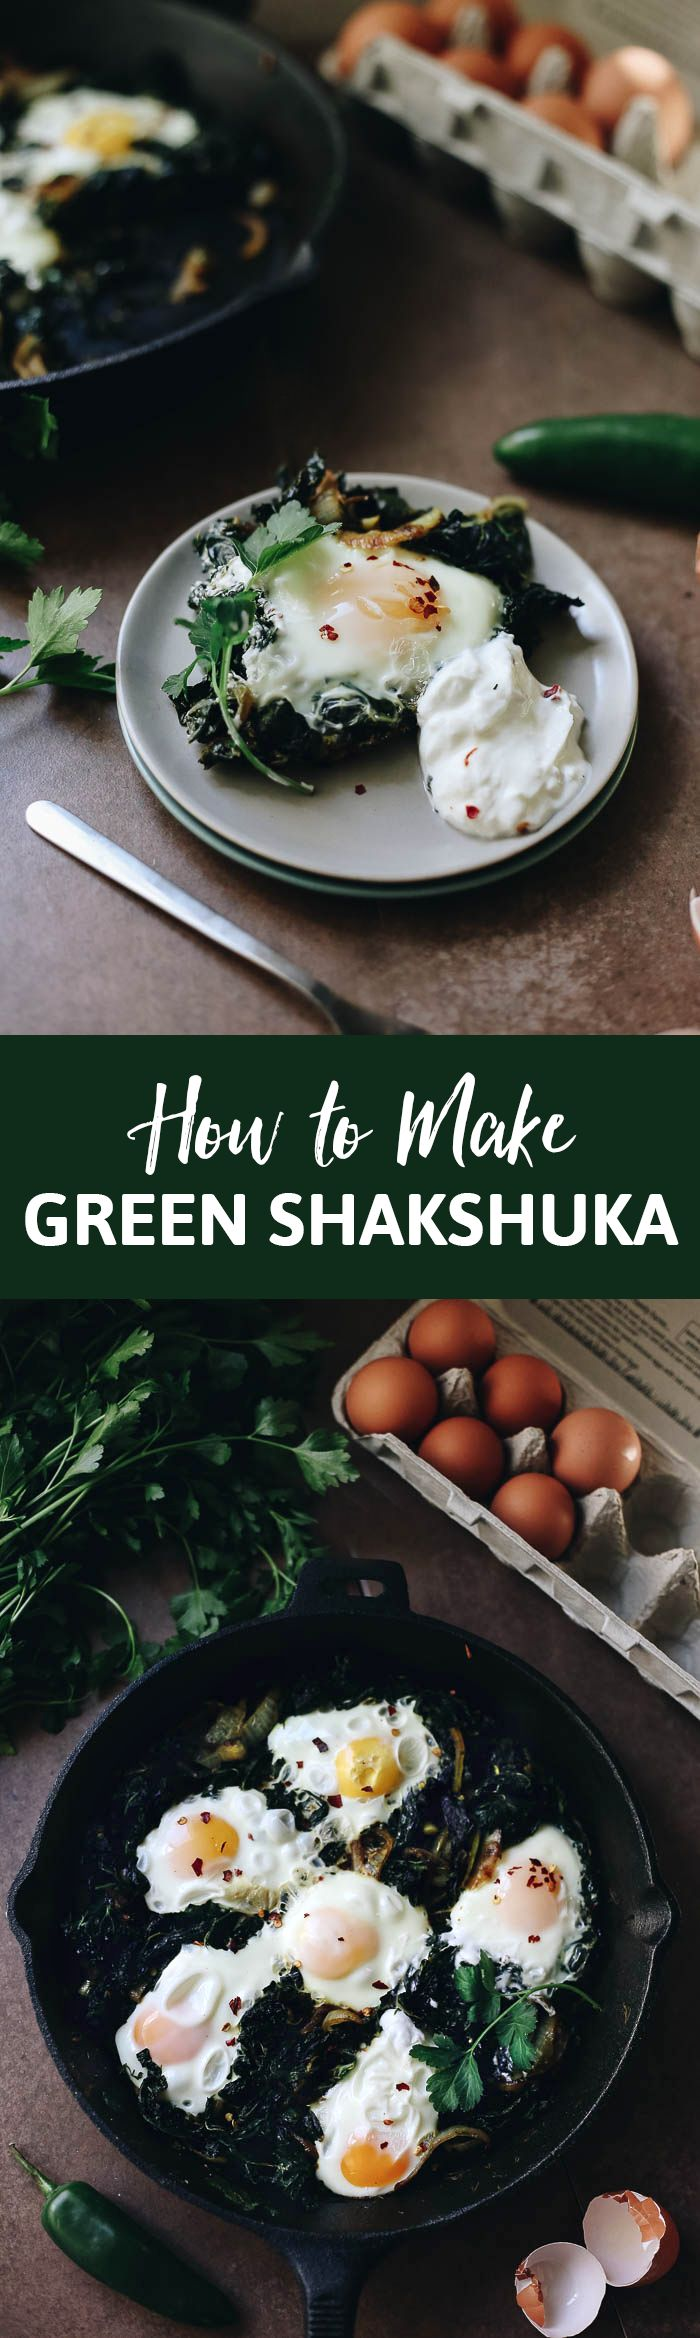 Inspired by my recent trip to Israel, this green shakshuka is packed full of leafy greens, fresh herbs and the garlicky poached eggs we all love in Shakshuka. The perfect recipe to change up your breakfast routine.